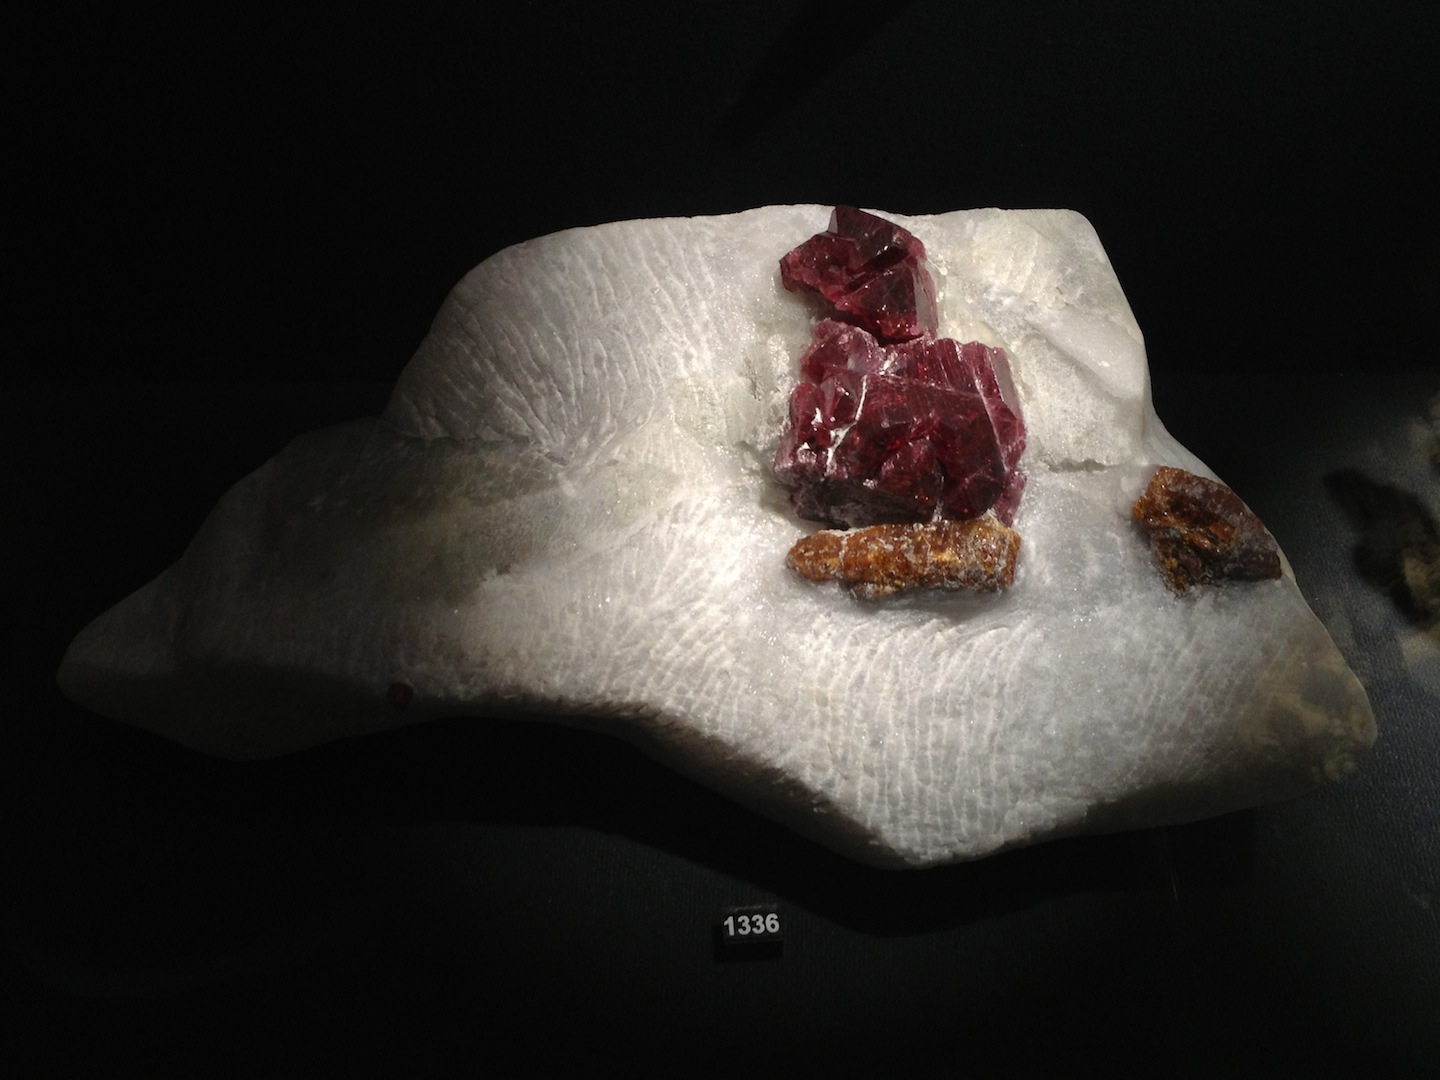 Crystal-Exhibition-La-Specola-Florence-Italy-jessewaugh.com-101.jpg